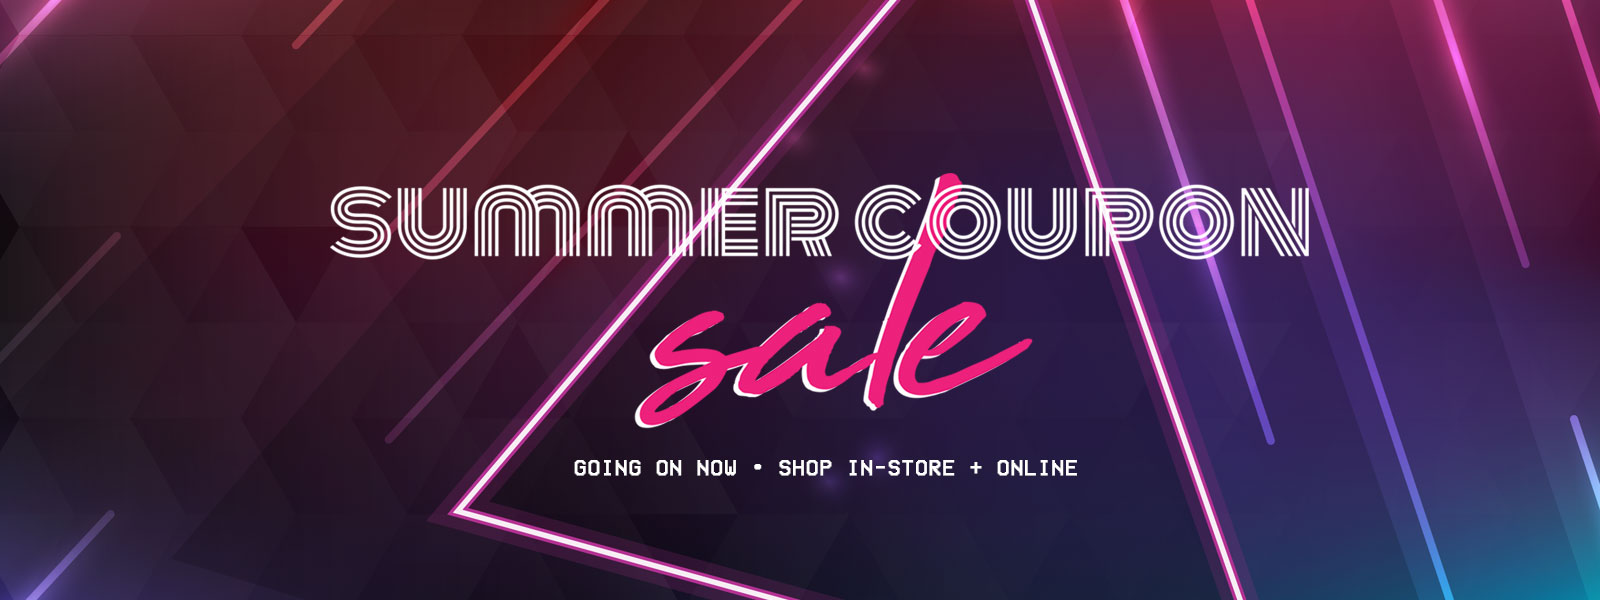 Summer Coupon Sale